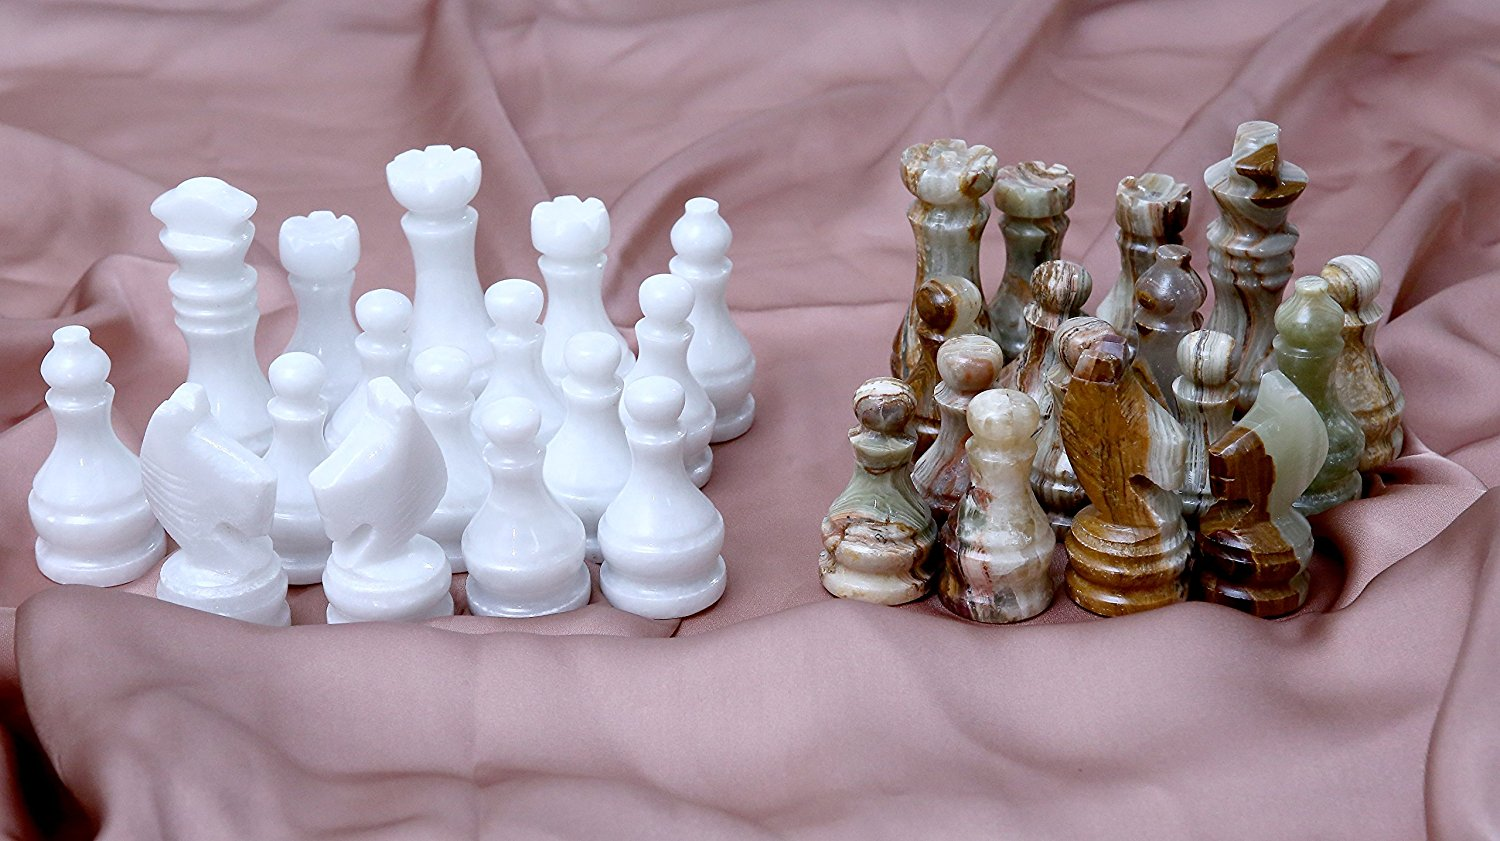 Buy RADICALn Green Onyx and White Marble Big Chess Figures